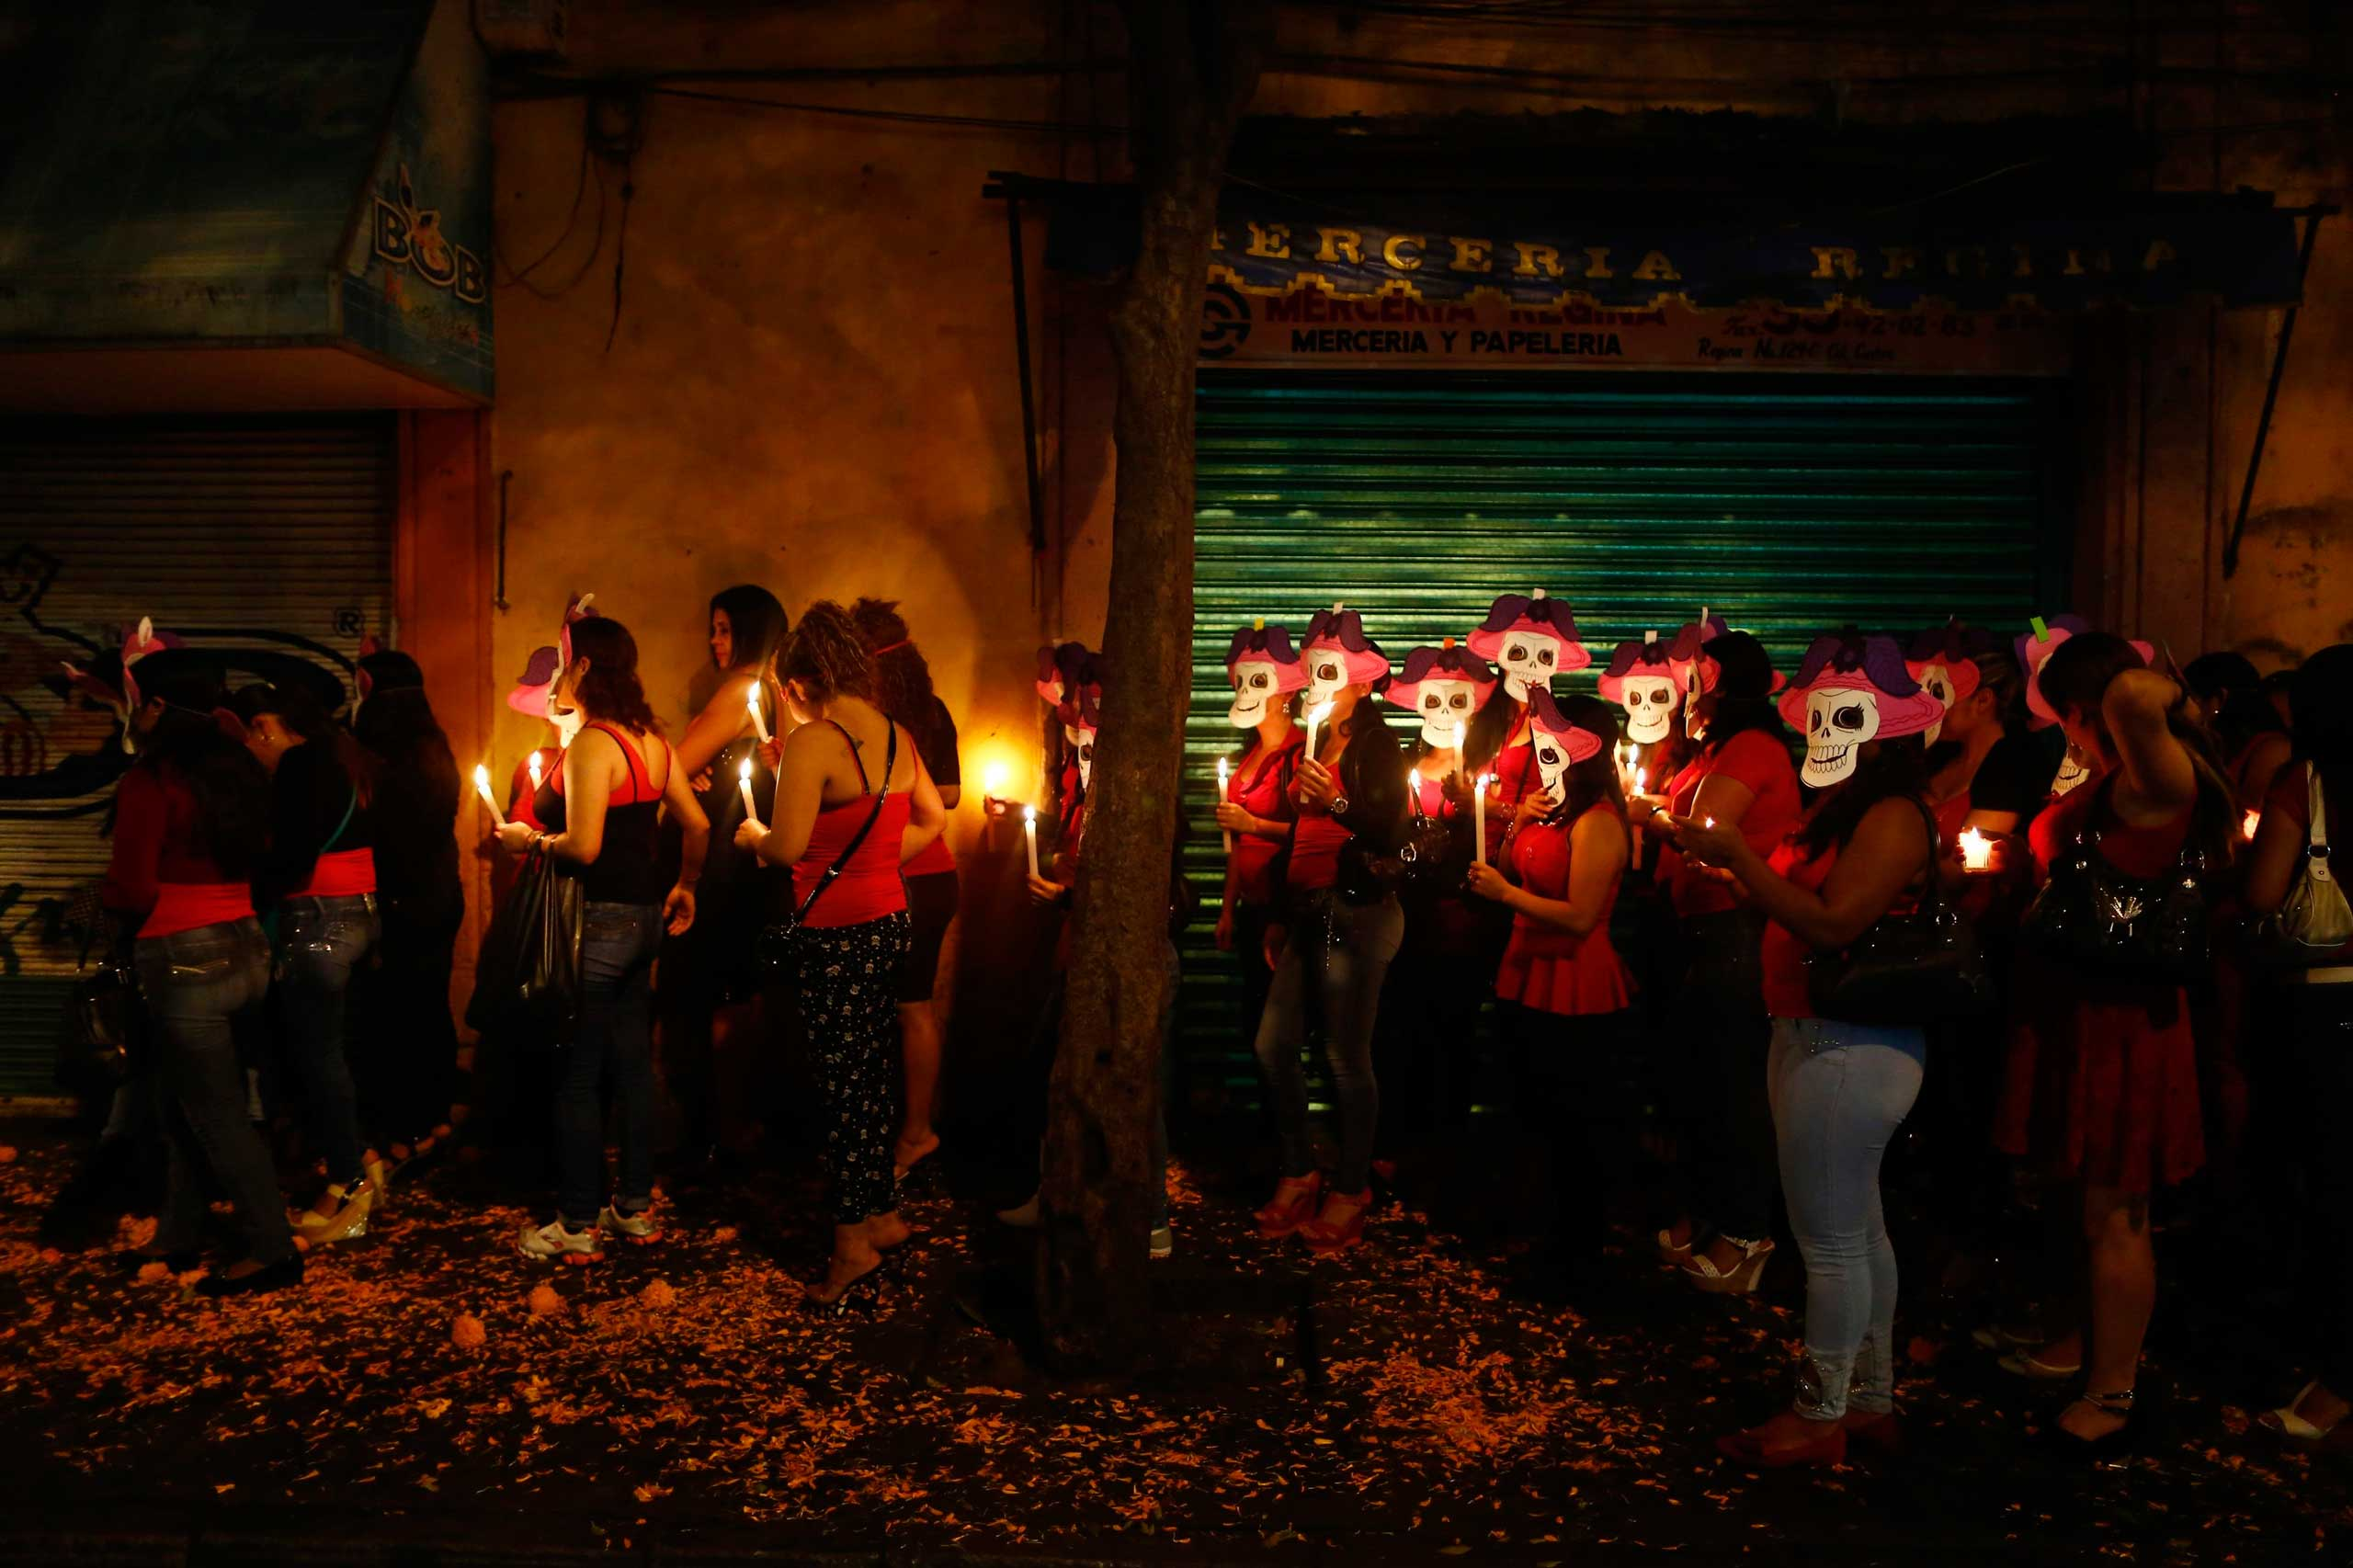 Oct. 27, 2014. Sex workers in Mexico City wear skeleton masks, a traditional Mexican symbol representing the Day of the Dead, during a procession to remember their deceased colleagues, especially those who were violently murdered.